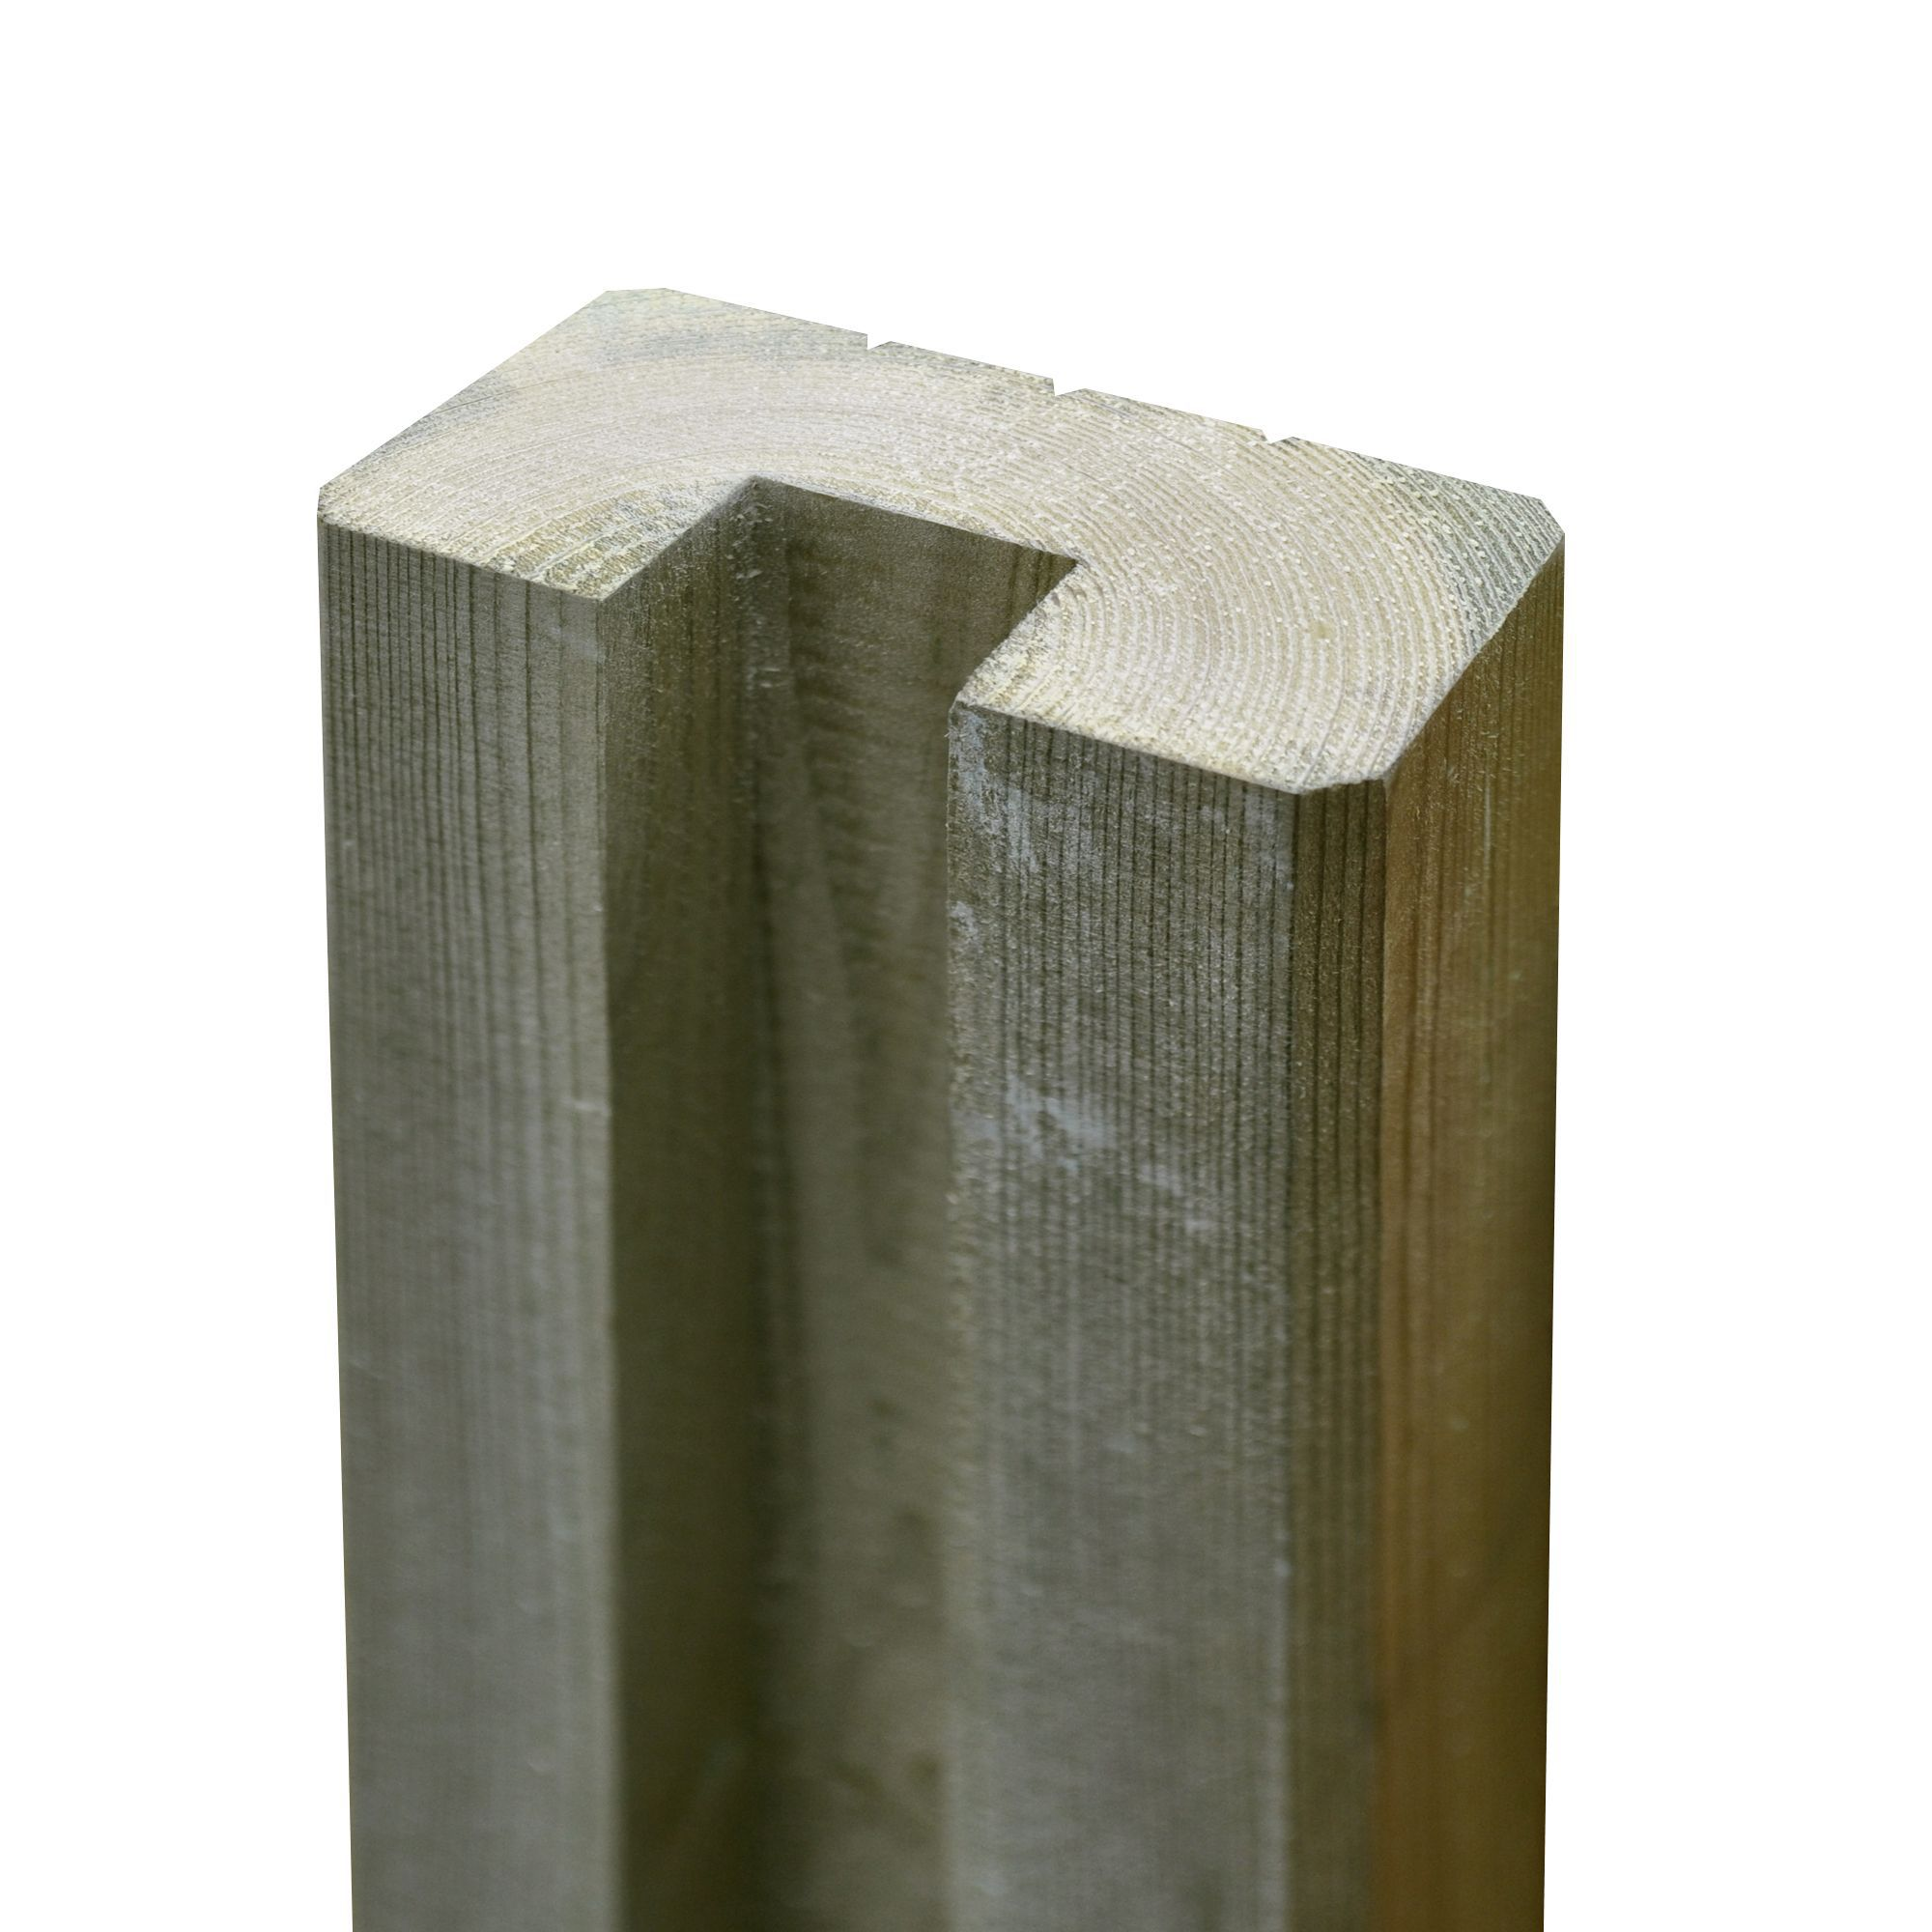 Blooma Neva Natural Wood Slotted Half Fence Post H 1 8m